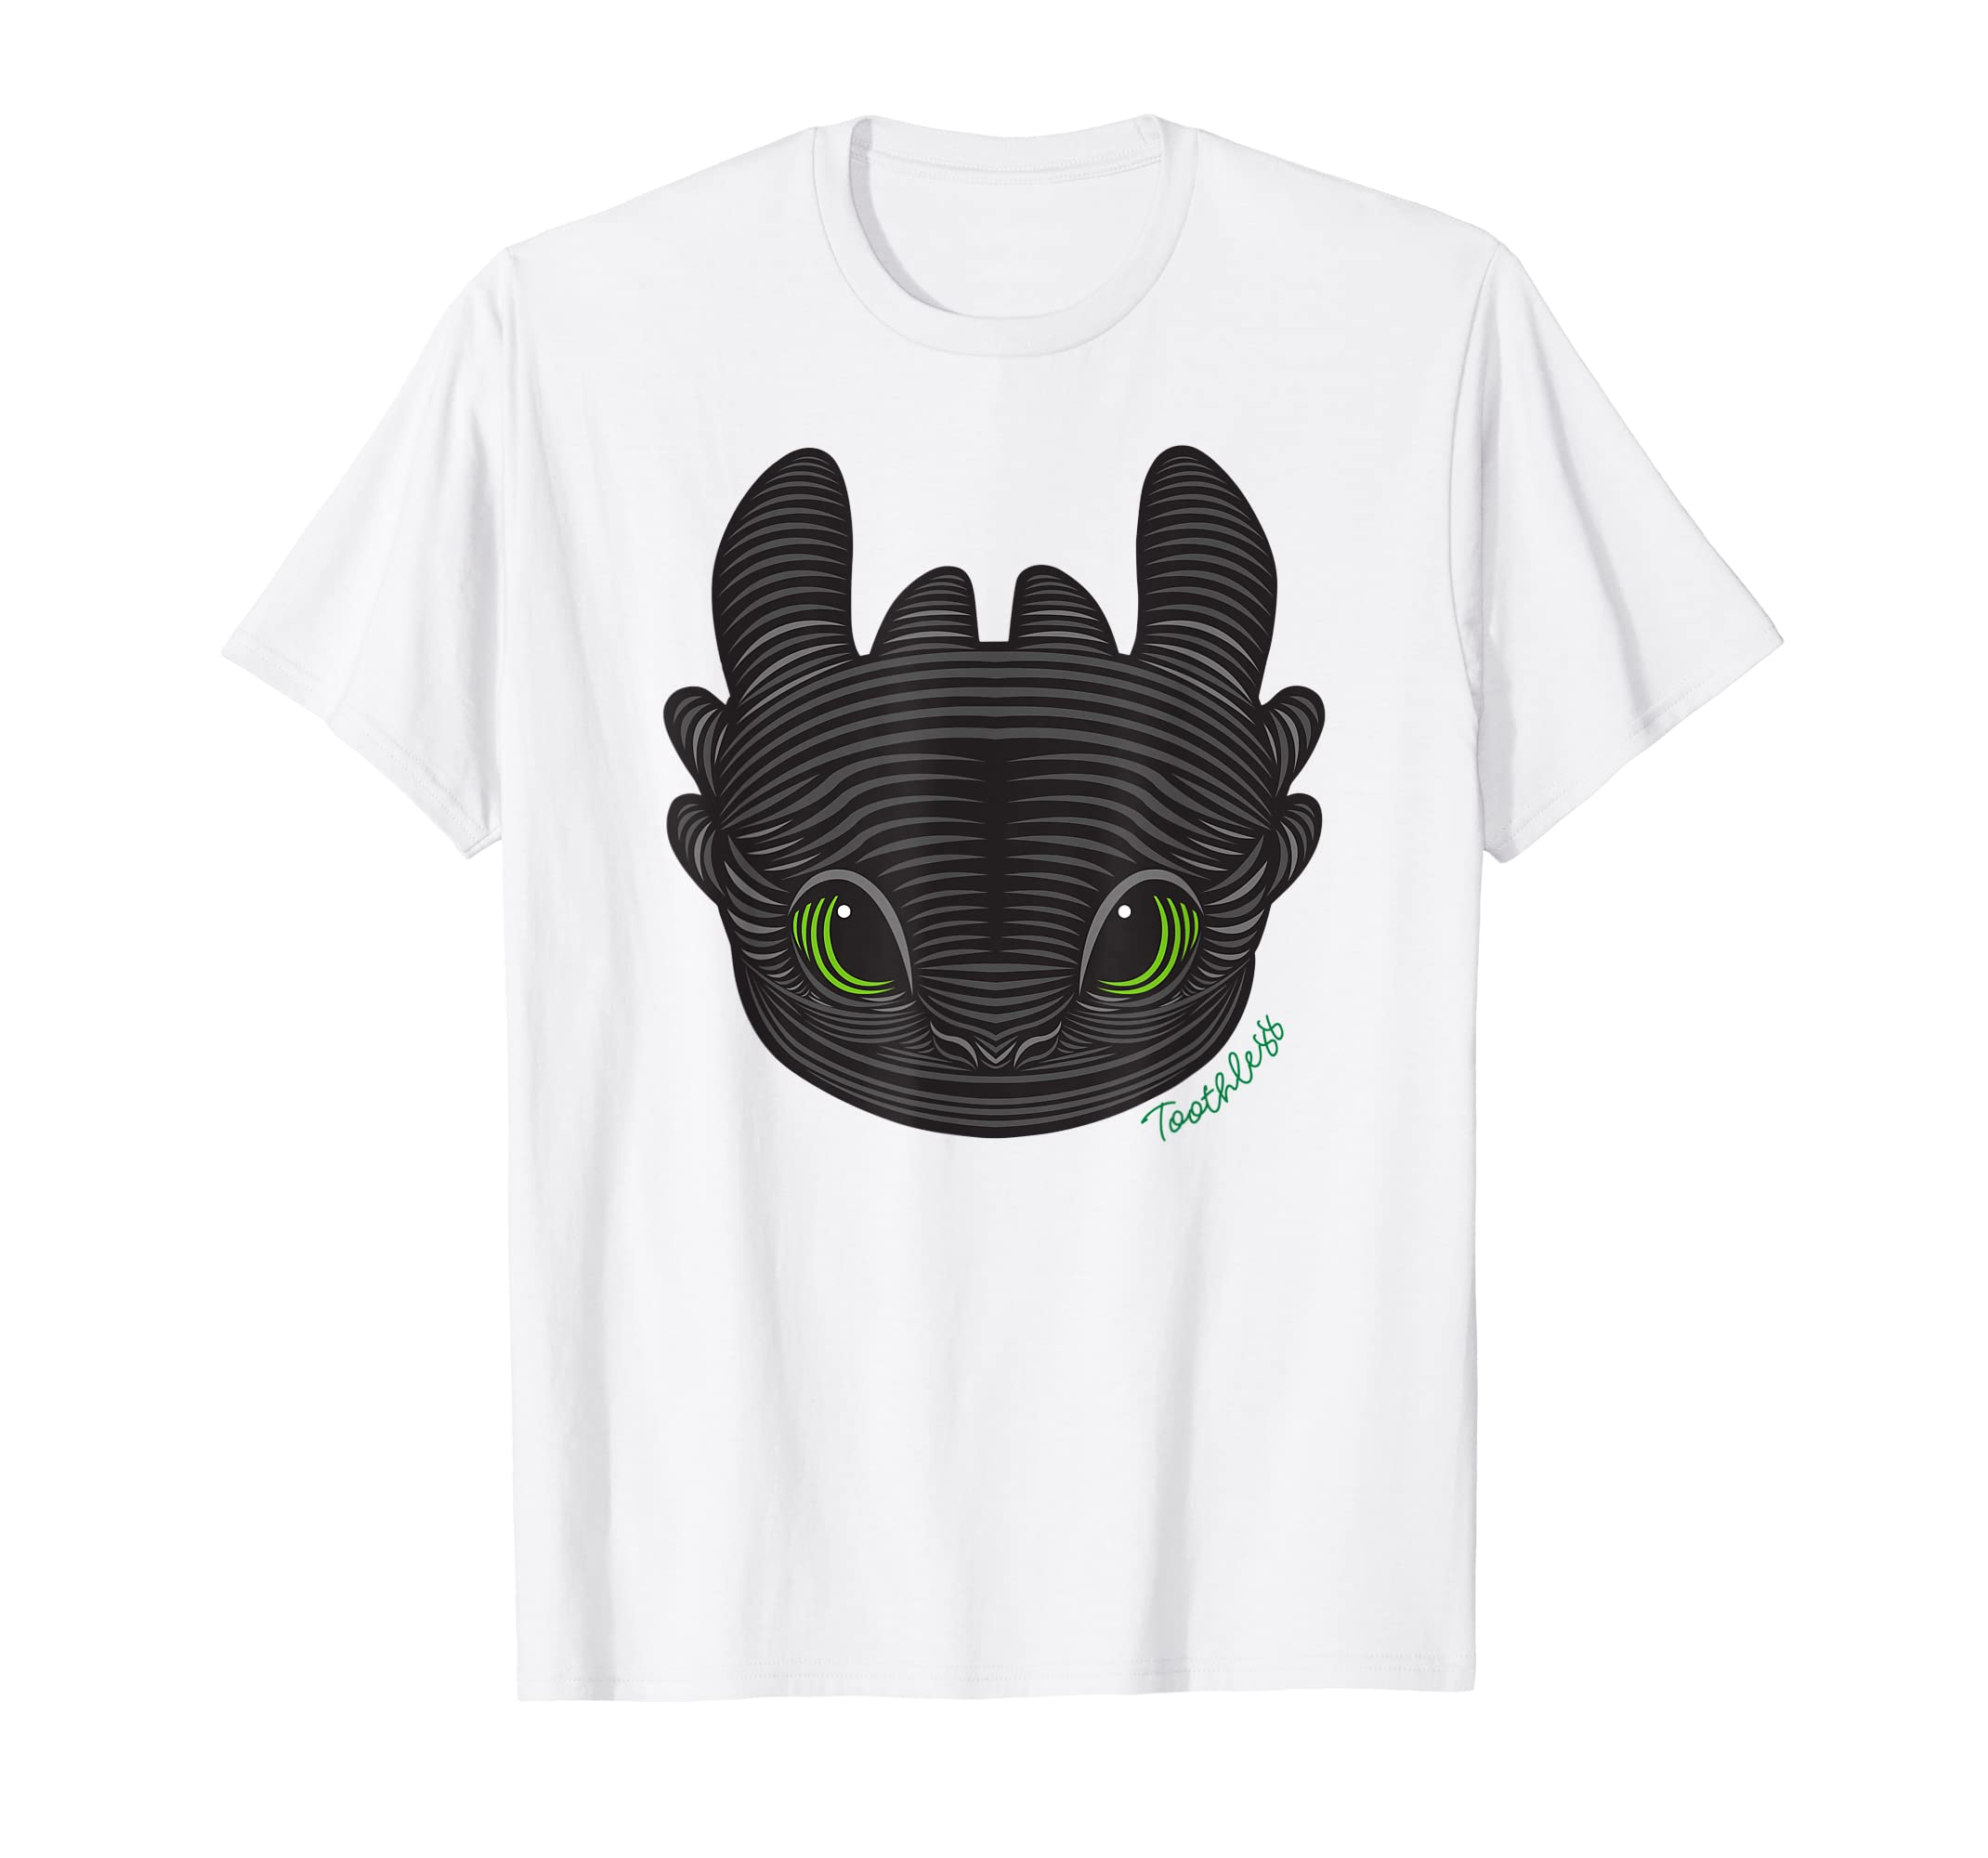 57e5a5b0a Amazon.com: DreamWorks How to Train Your Dragon 3 Toothless T-shirt:  Clothing